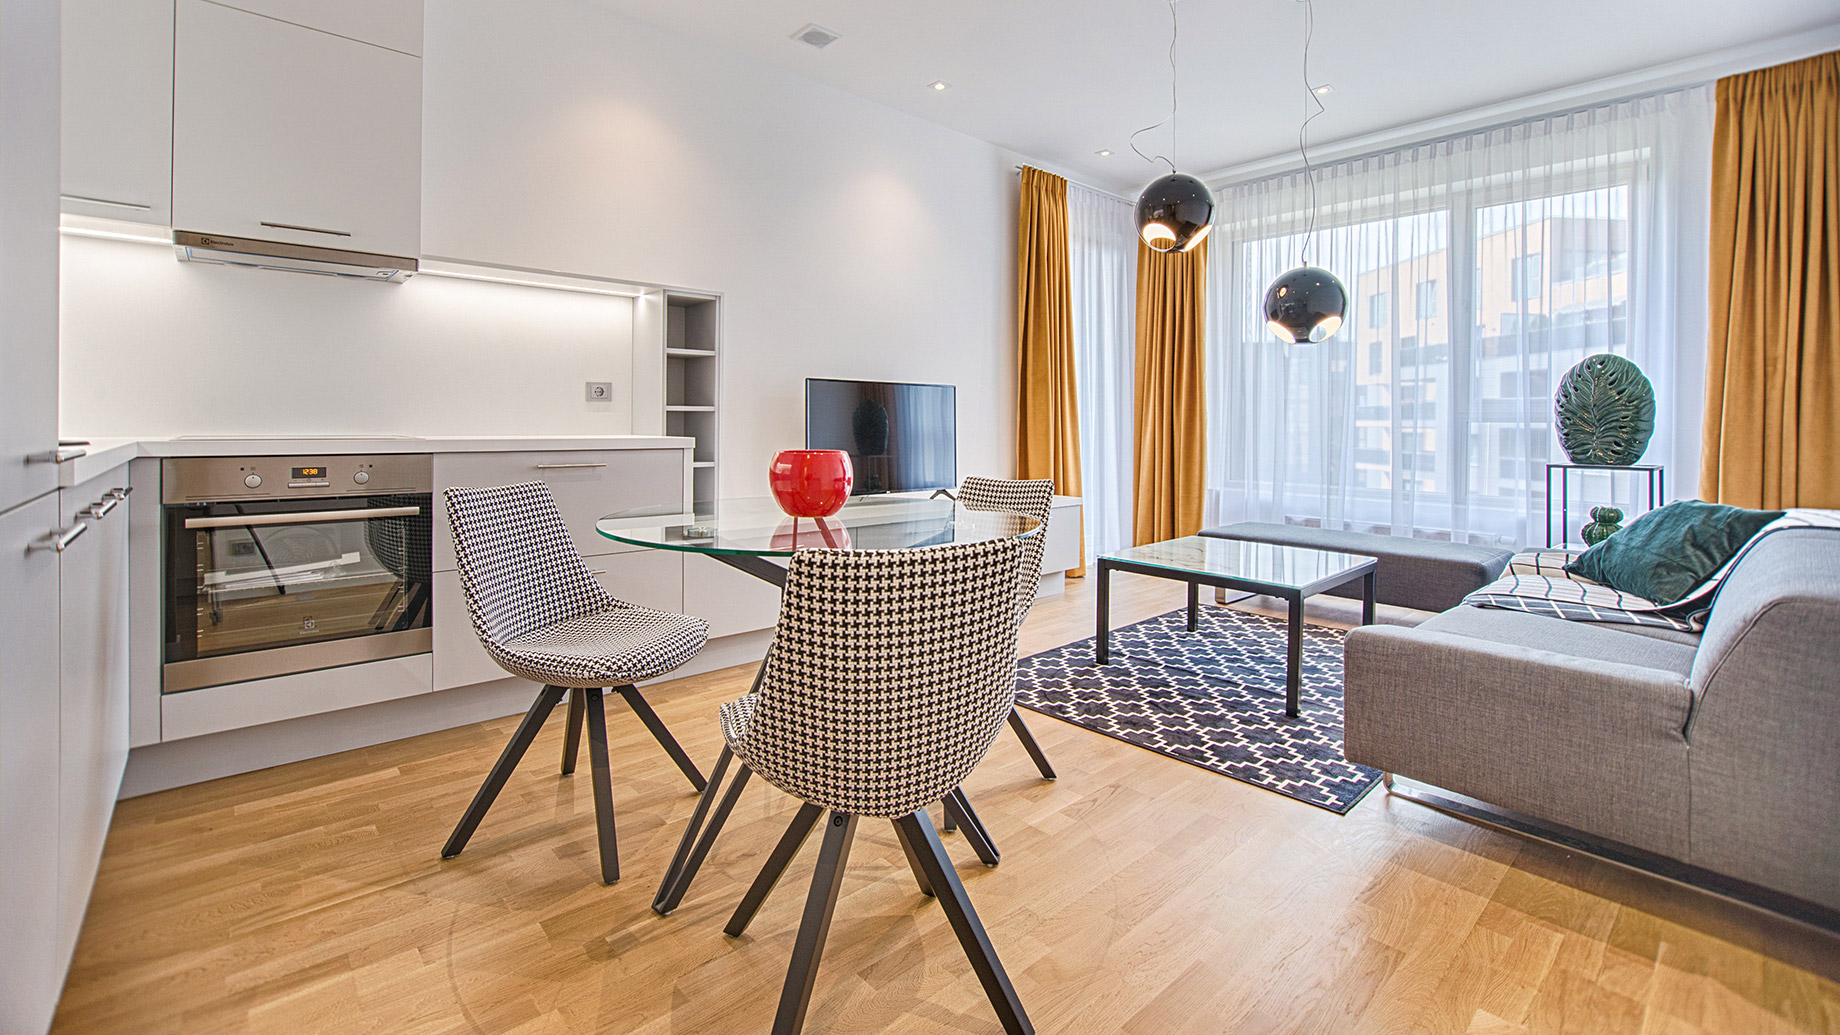 Interior Design Ideas How To Make Your Student Flat Feel Like Home The Pinnacle List